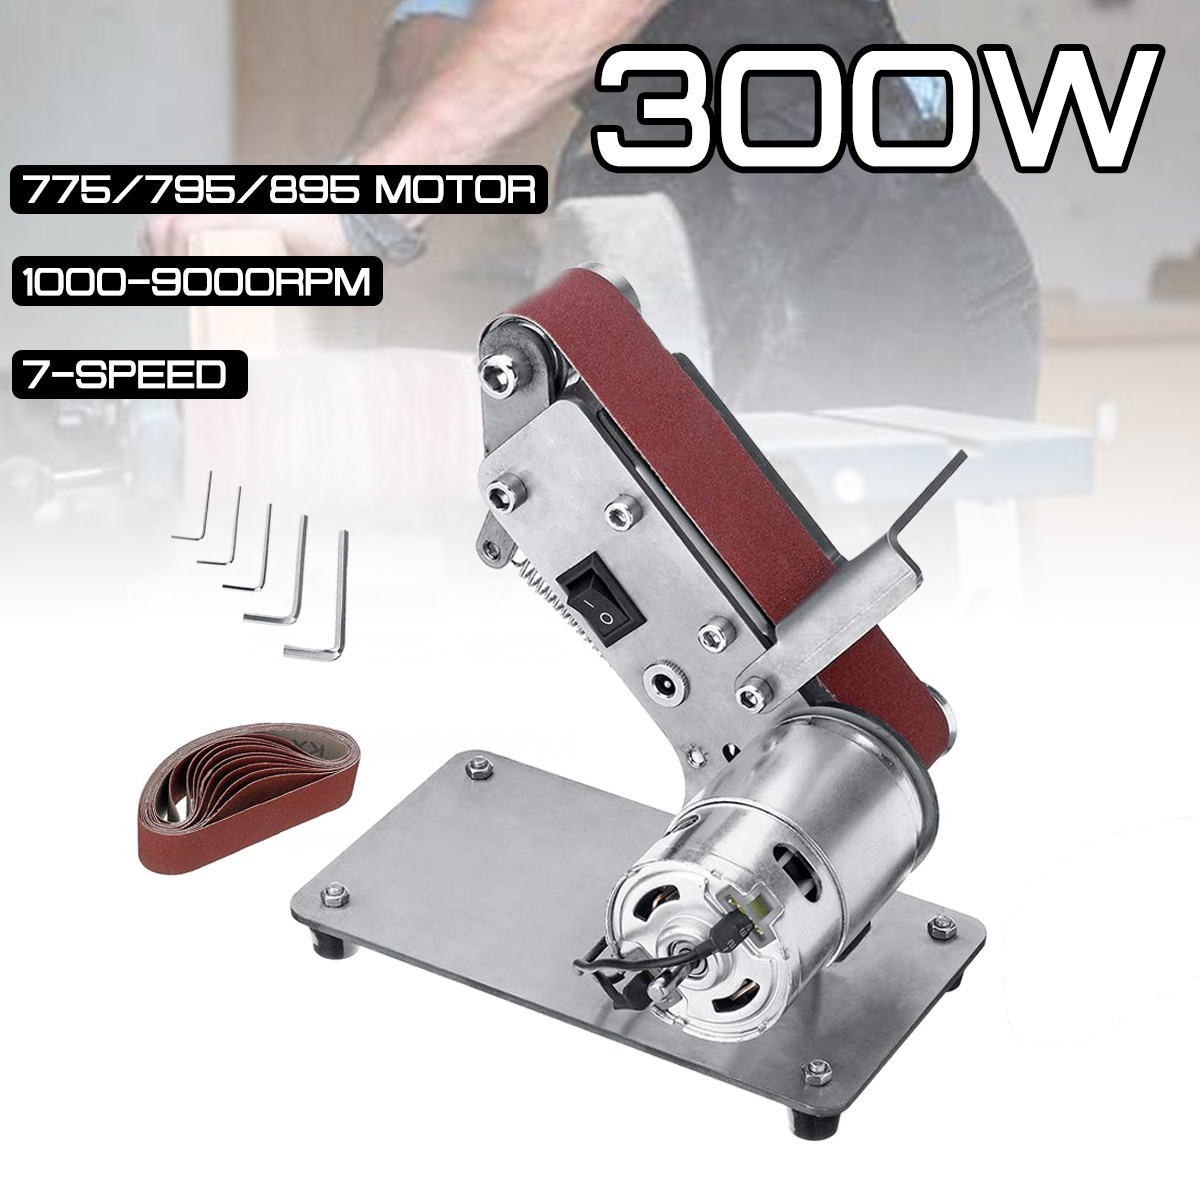 Sander Belt Machine 300W Electric Belt Sander Polishing Grinder Machine Folding Sander Grinding Tool Cutter Edges Sharpener